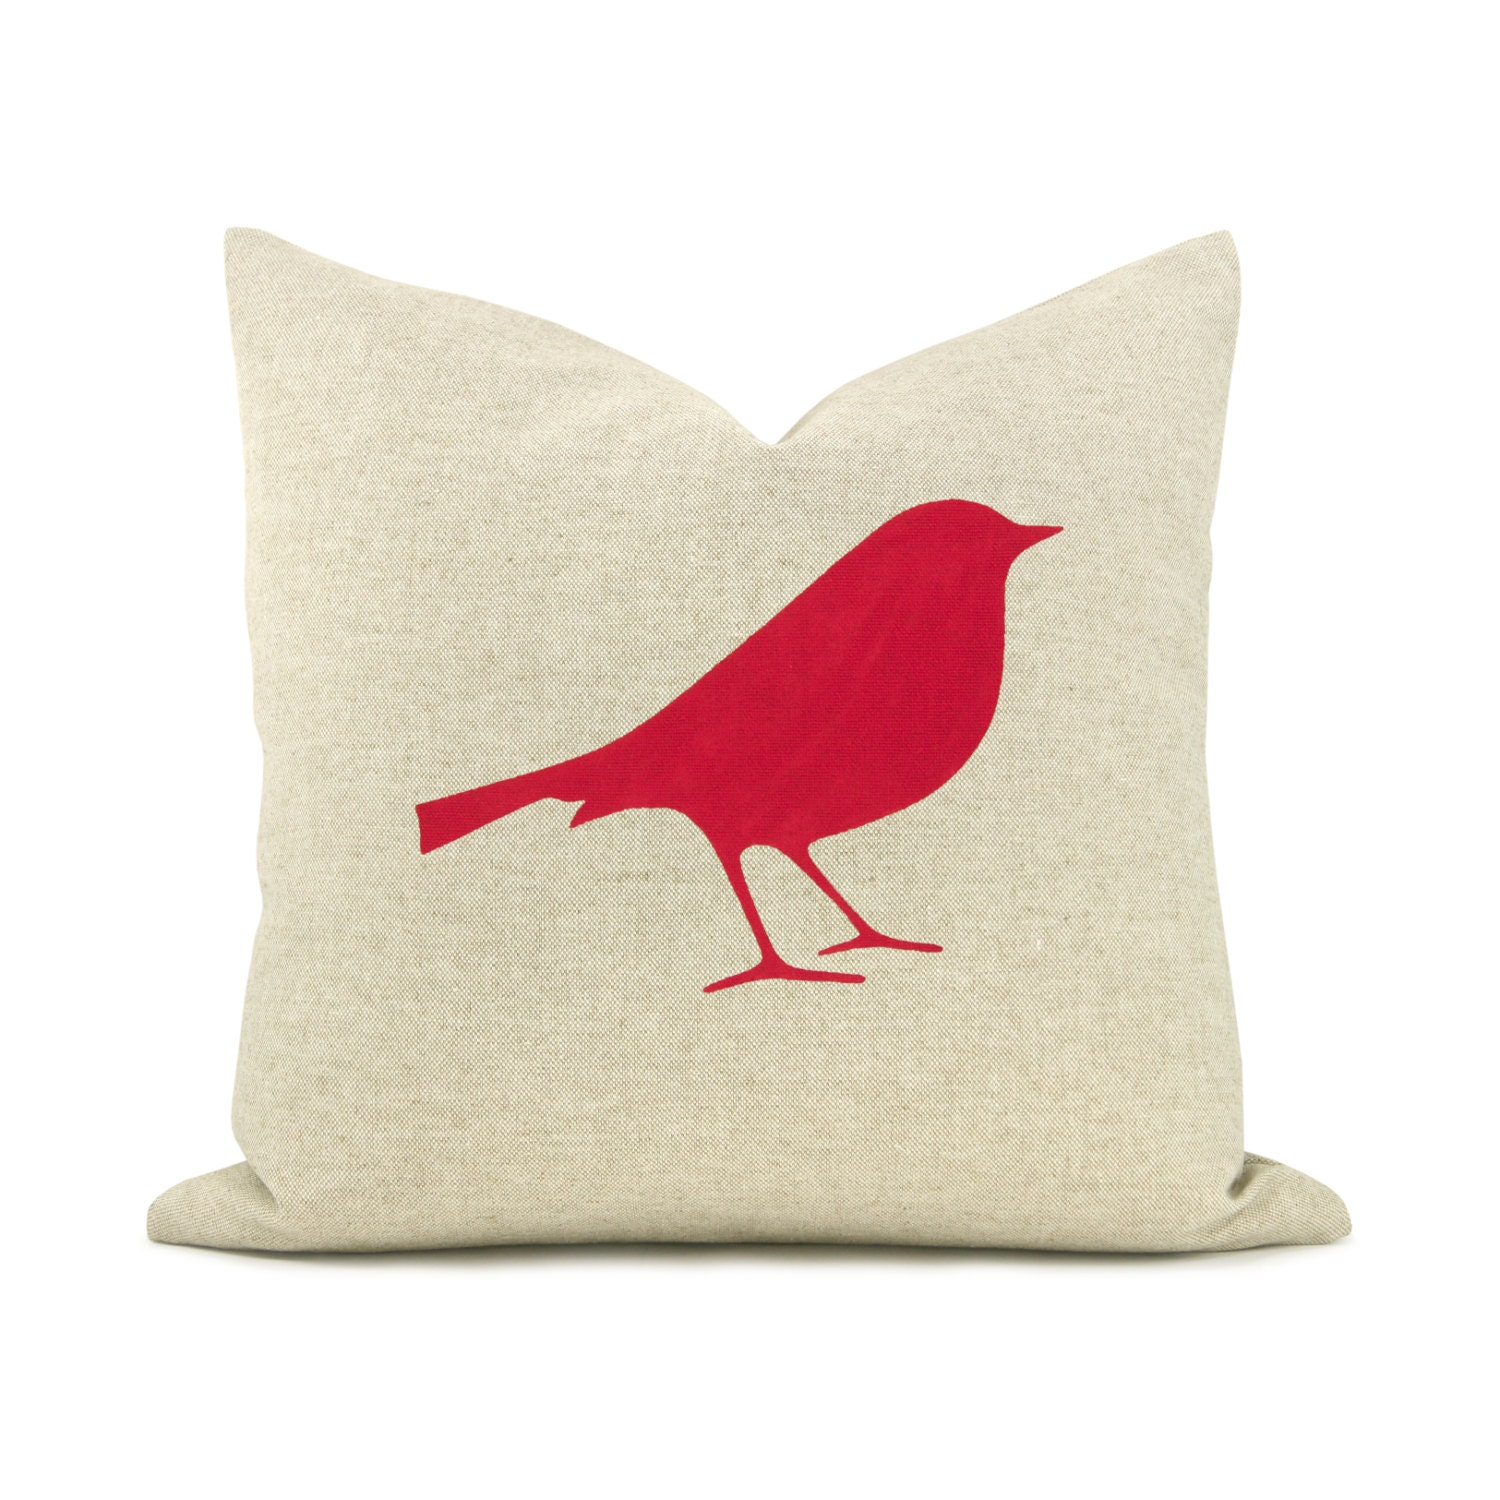 Throw Pillows With Birds : 16x16 decorative throw pillow Bird pillow cover Modern